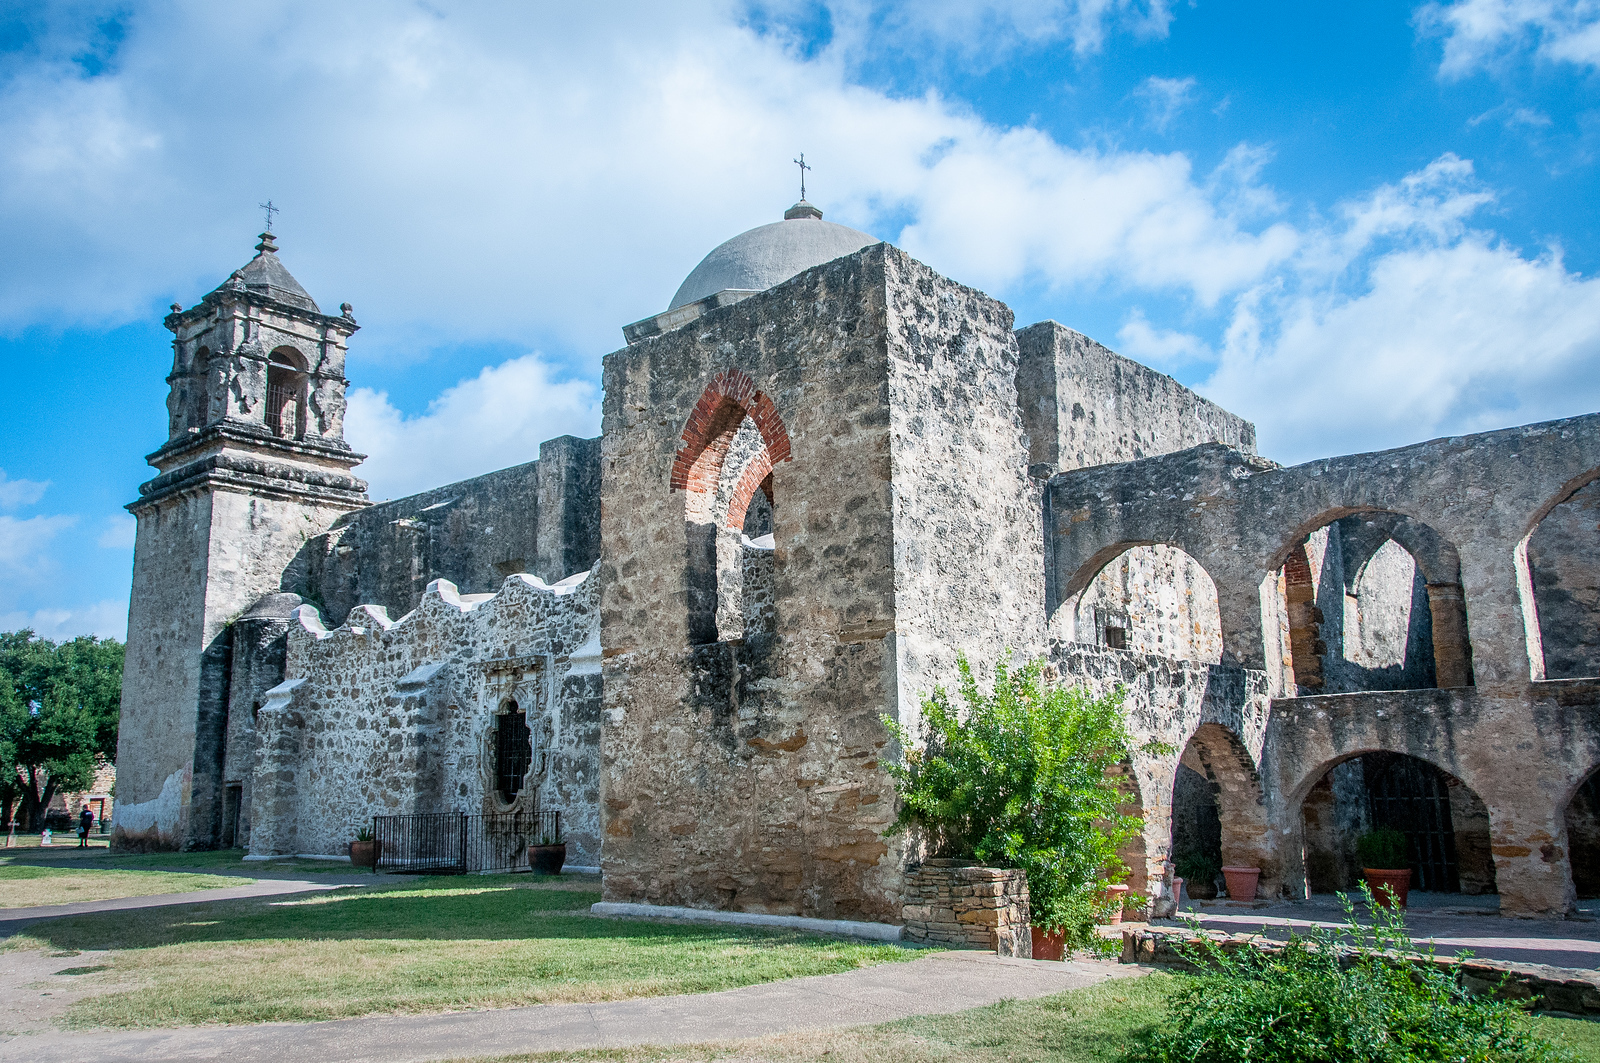 San Antonio Missions - UNESCO World Heritage Site